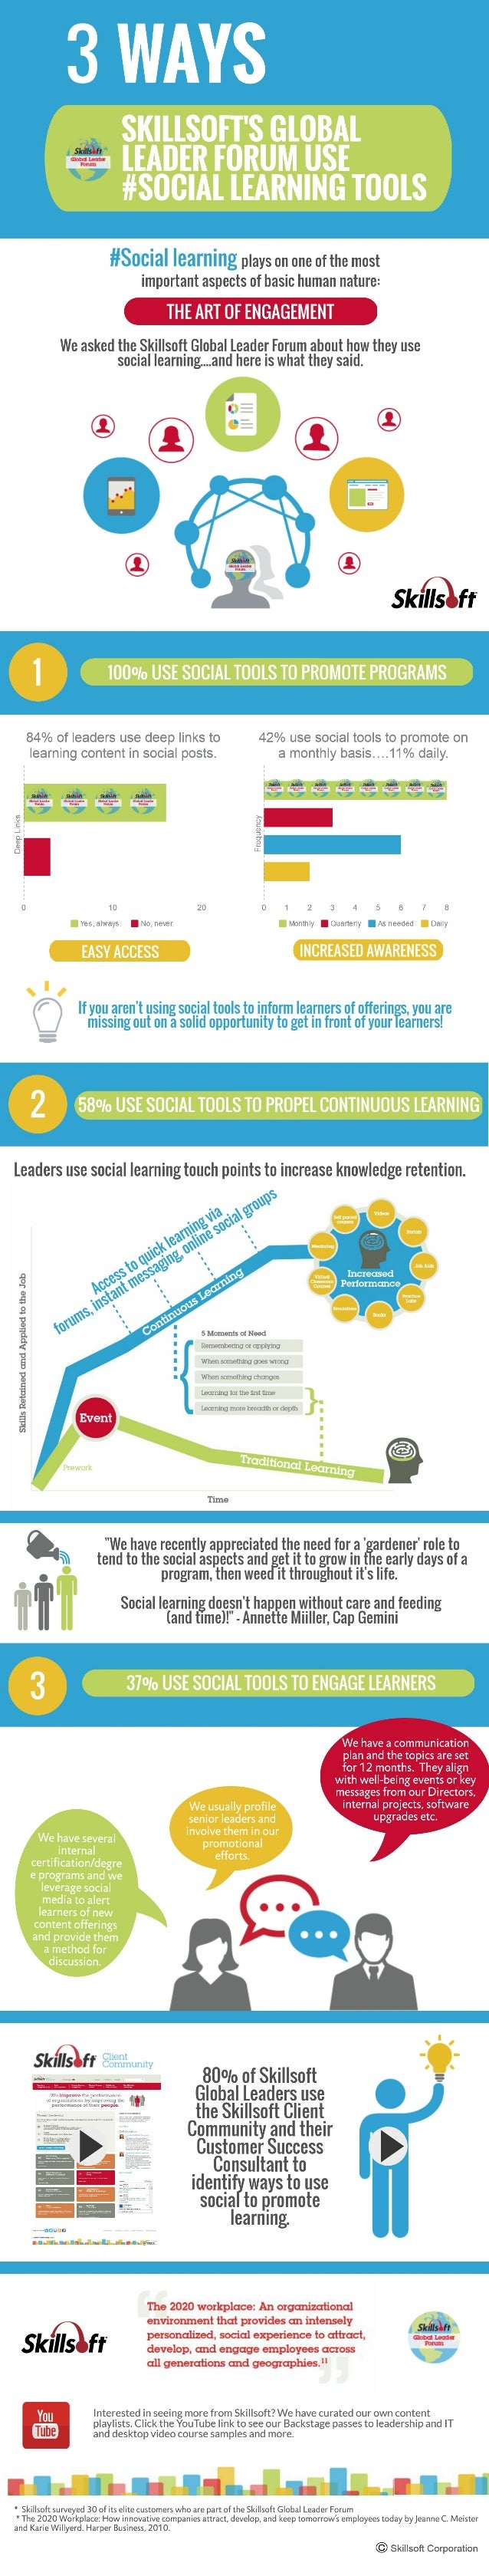 3 WAYS  SK| LLSOFT'S GLOBAL LEADER FORUM USE #SOG| AL LEARNING TOOLS  #Socia|  learning plays on one of the most important...